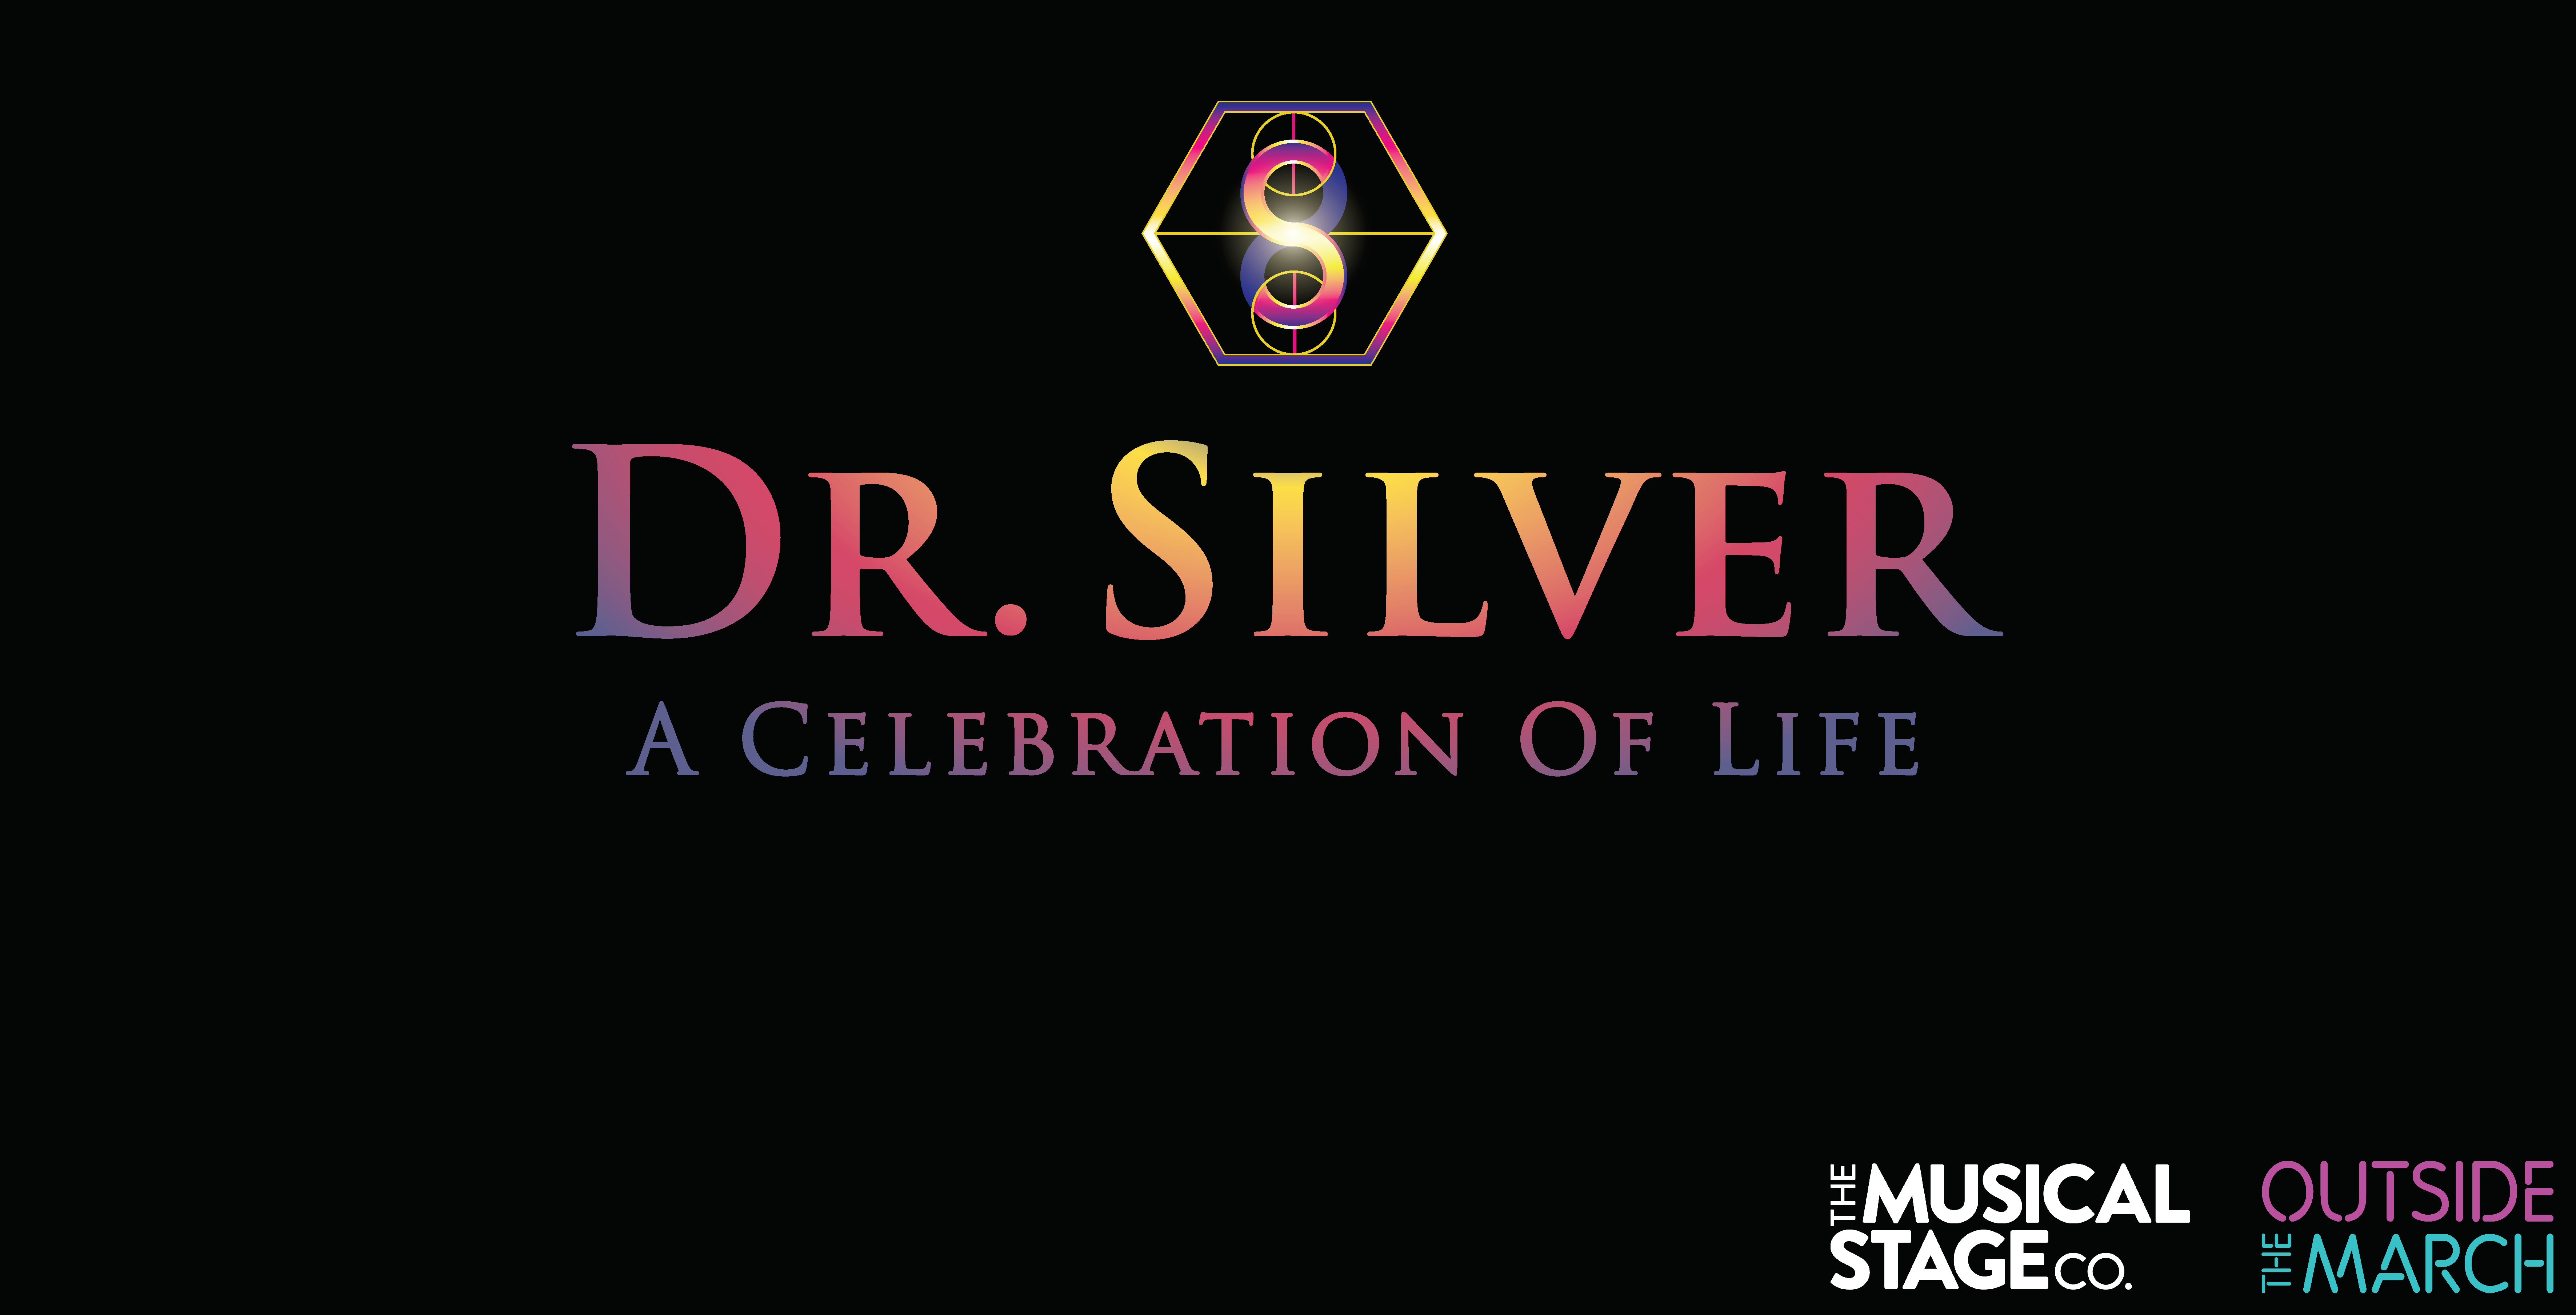 Tickets for Dr. Silver: A Celebration of Life in Toronto from Ticketwise